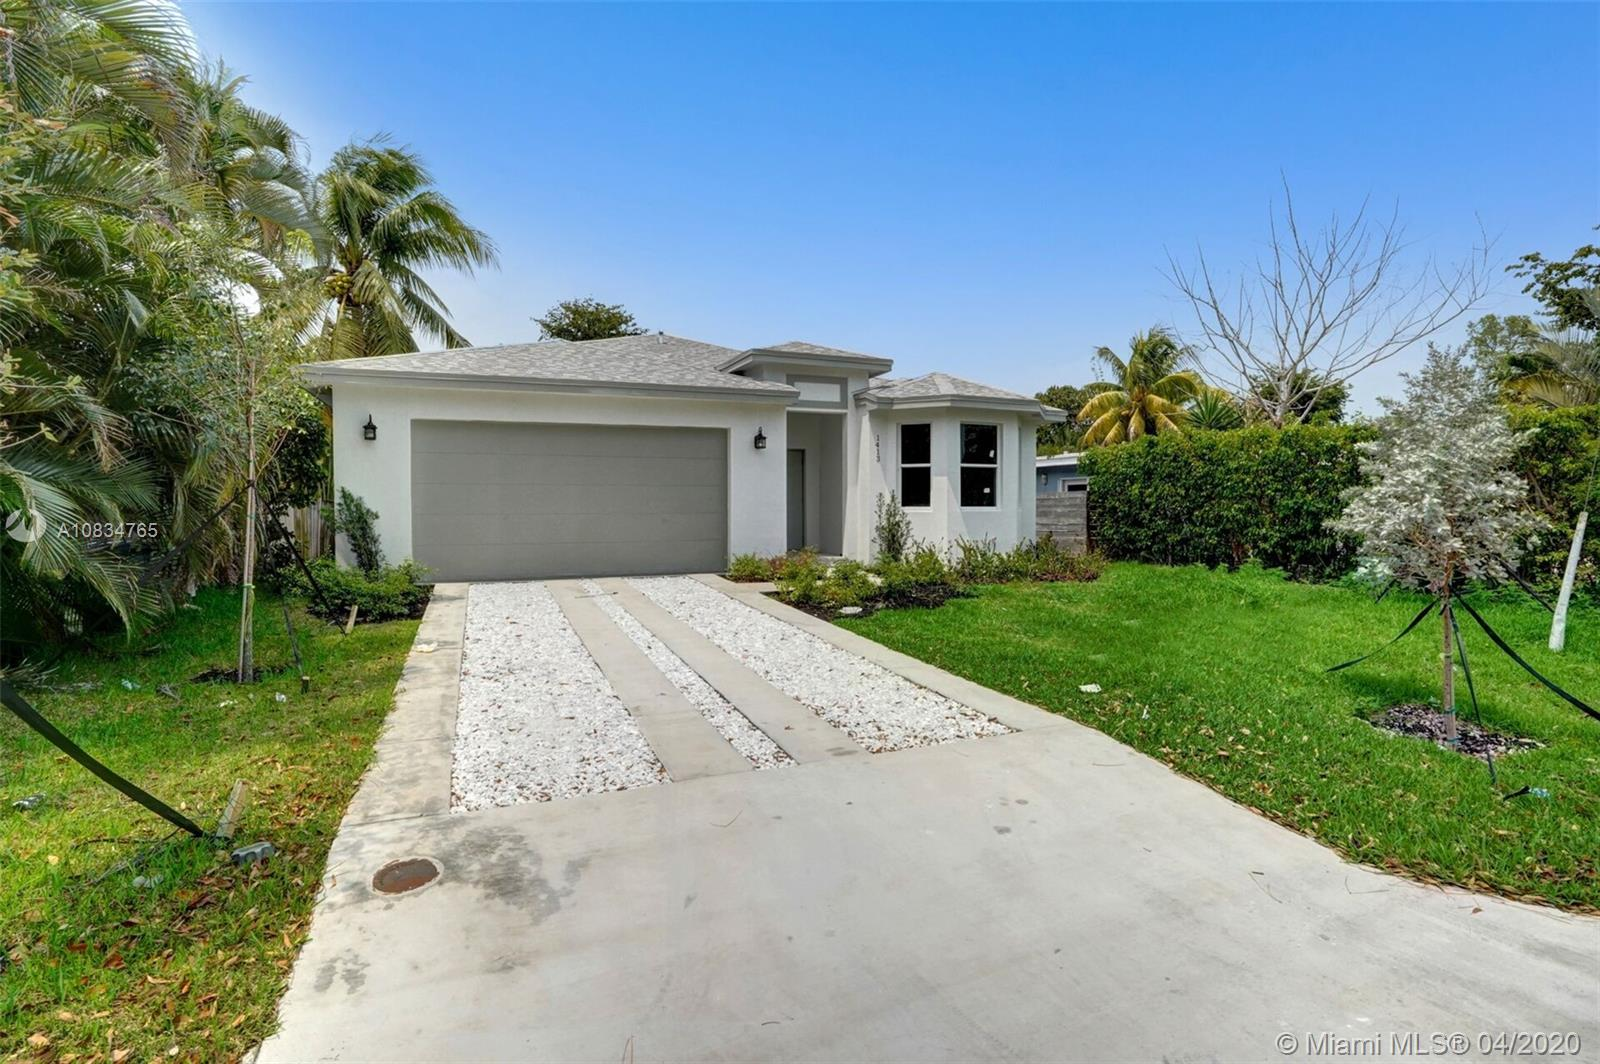 Brand new, never been used, gorgeous new construction turn-key house that includes 3 bedrooms + den, 2 bathrooms, 2 car garage, huge backyard, upgraded kitchen, stainless steel appliances, central air, and more! Master bedroom and bathroom are huge! Walk-in closets. Live in the heart of downtown Fort Lauderdale for an affordable price. Minutes walk from Wilton Manors, minutes drive to beach and major highways. Motivated seller - easy to show on lockbox. NOTE: Pictures on listing were taken before final touchups. New ones will be added soon.